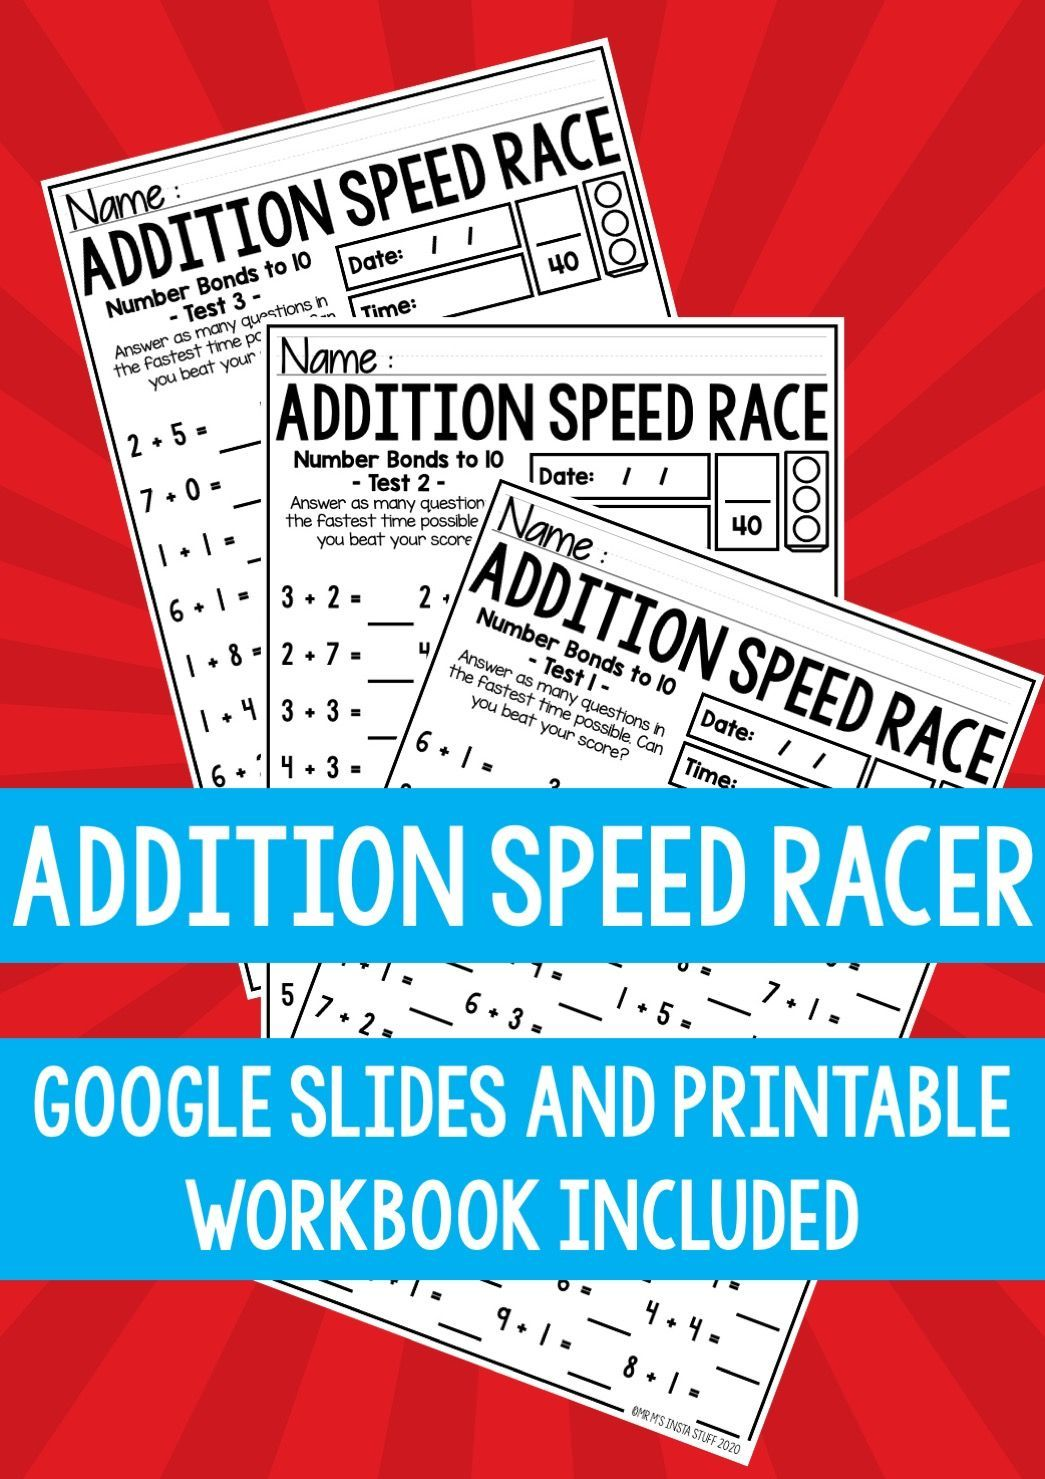 Addition Speed Racer Slides And Printable